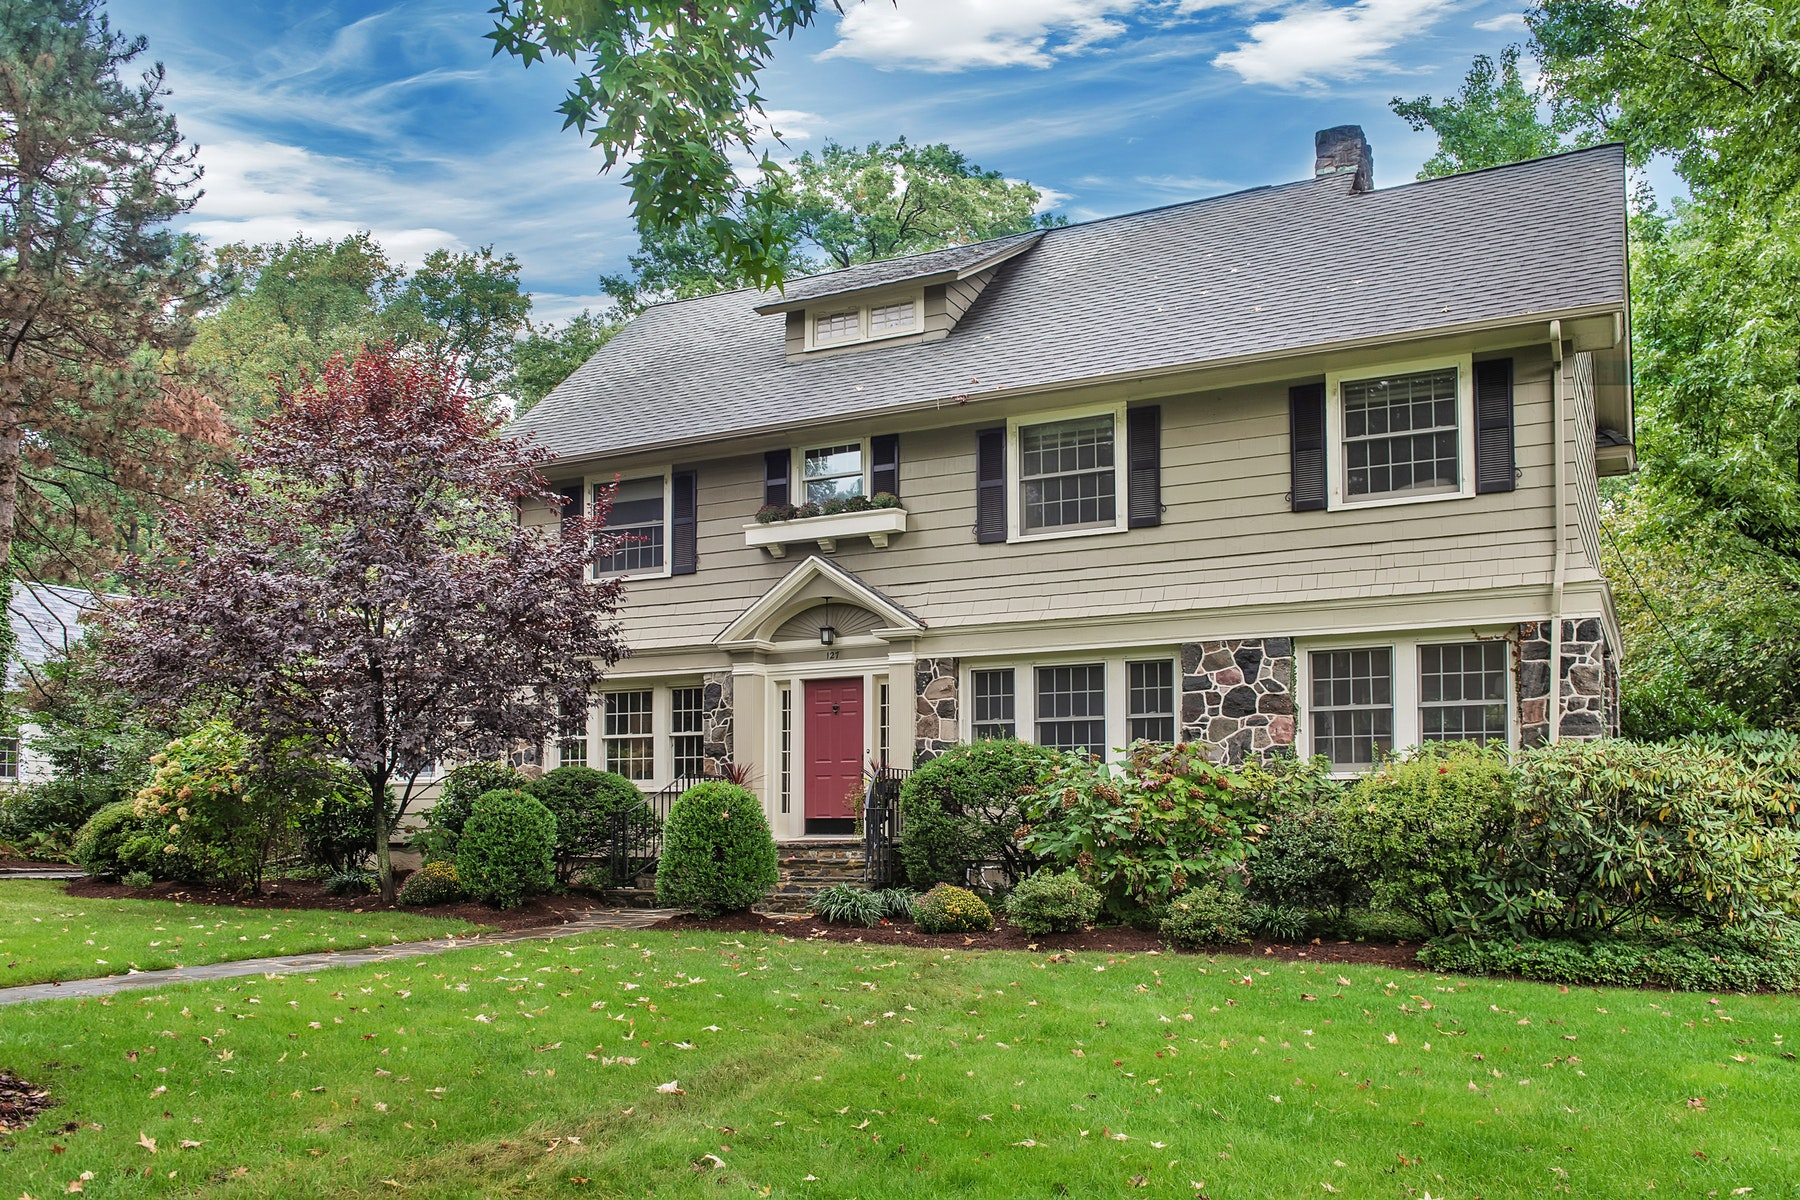 Single Family Home for Sale at Quintessential Center Hall Colonial 127 Inwood Avenue, Montclair, New Jersey 07043 United States